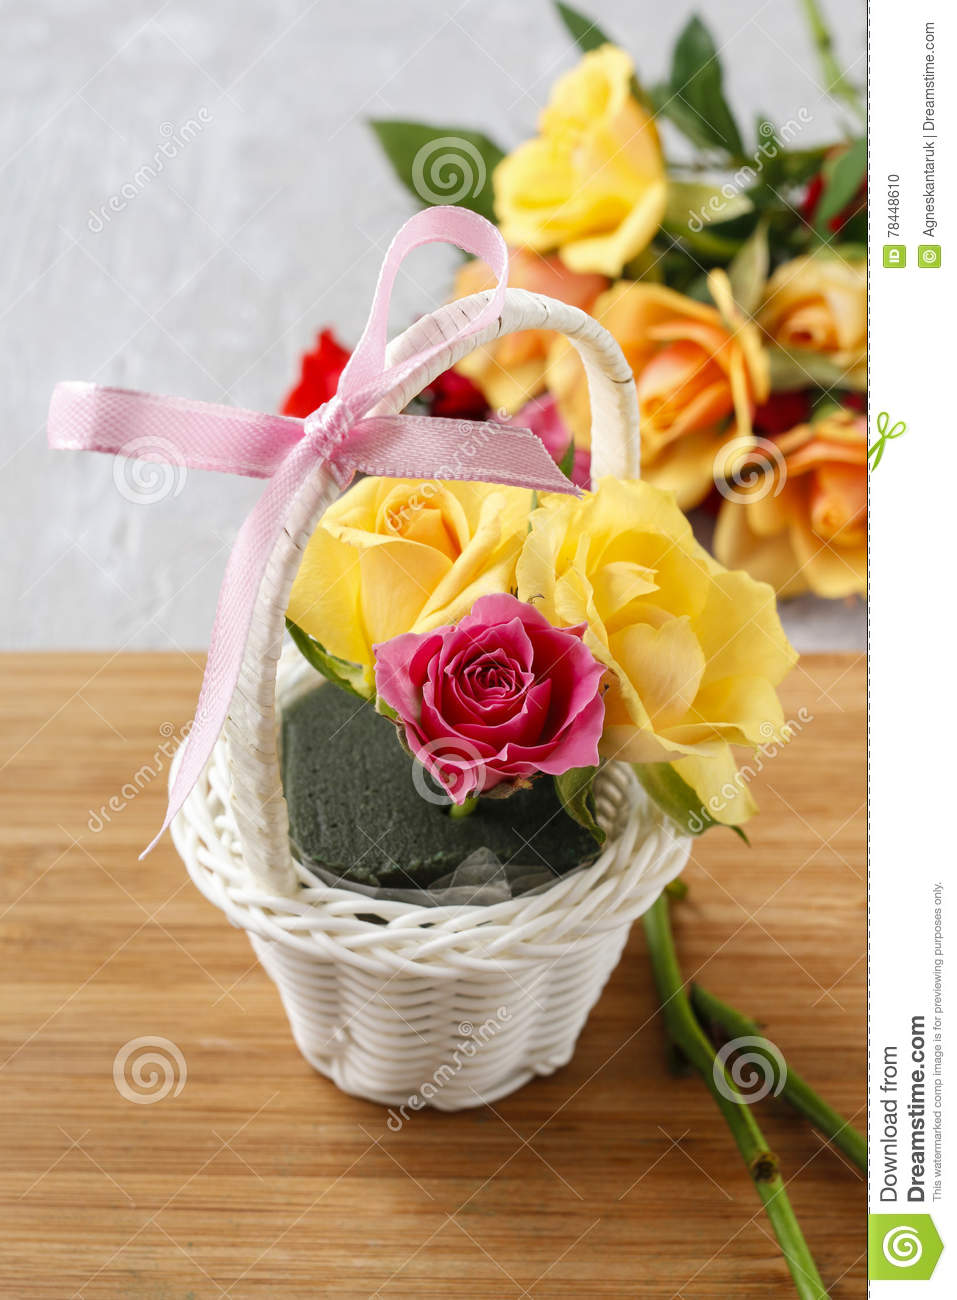 Florist Workspace How To Make Floral Arrangement With Roses In